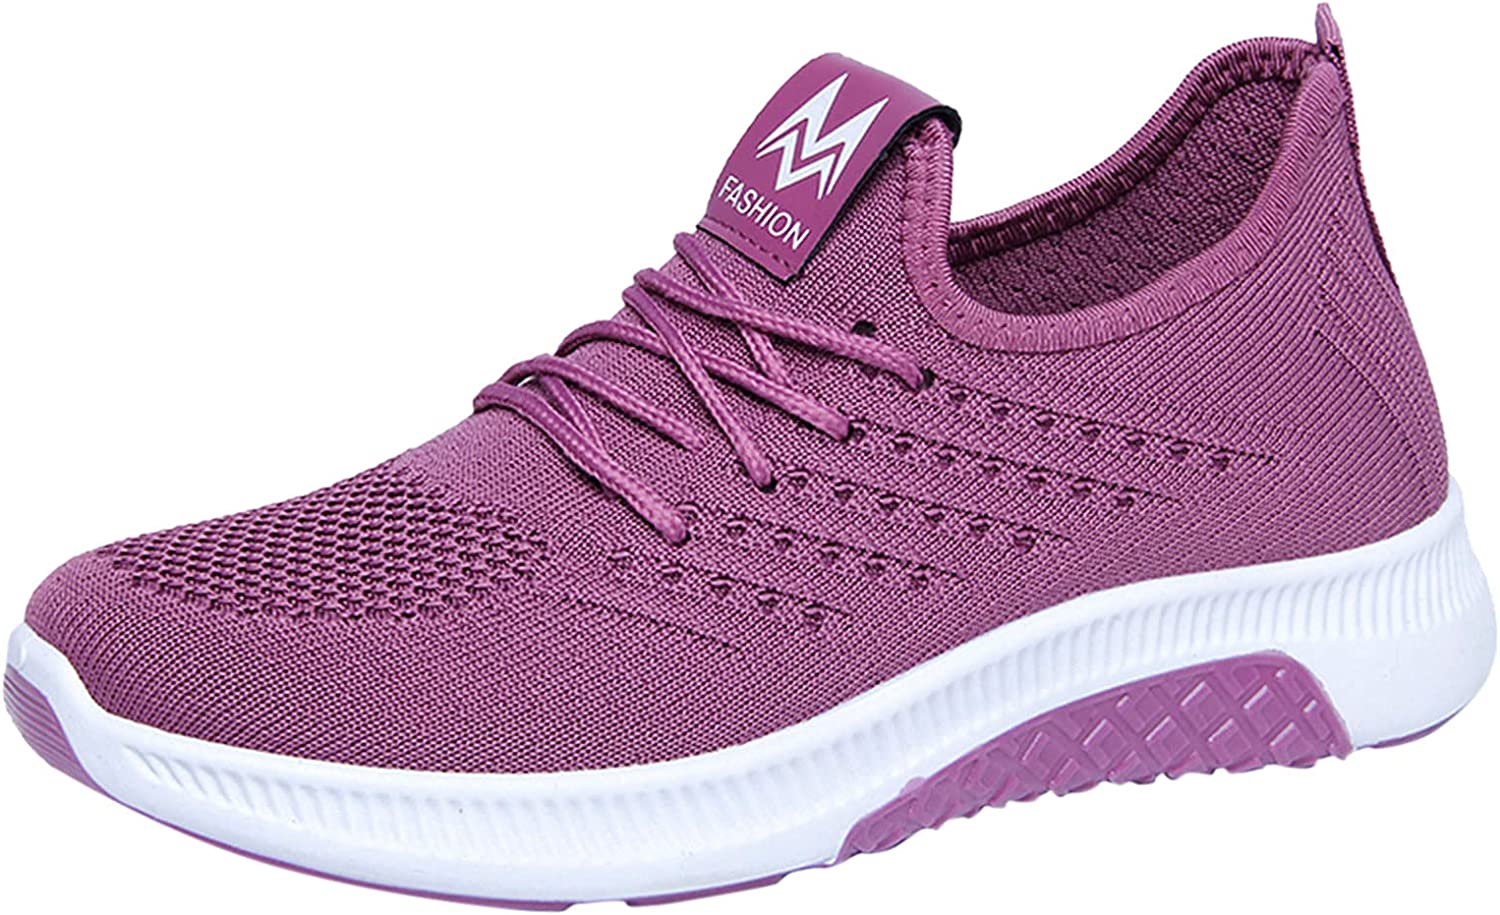 Now free shipping Women's Slip On Walking Shoes Lace Sneakers Breathable Fees free Up Ladies